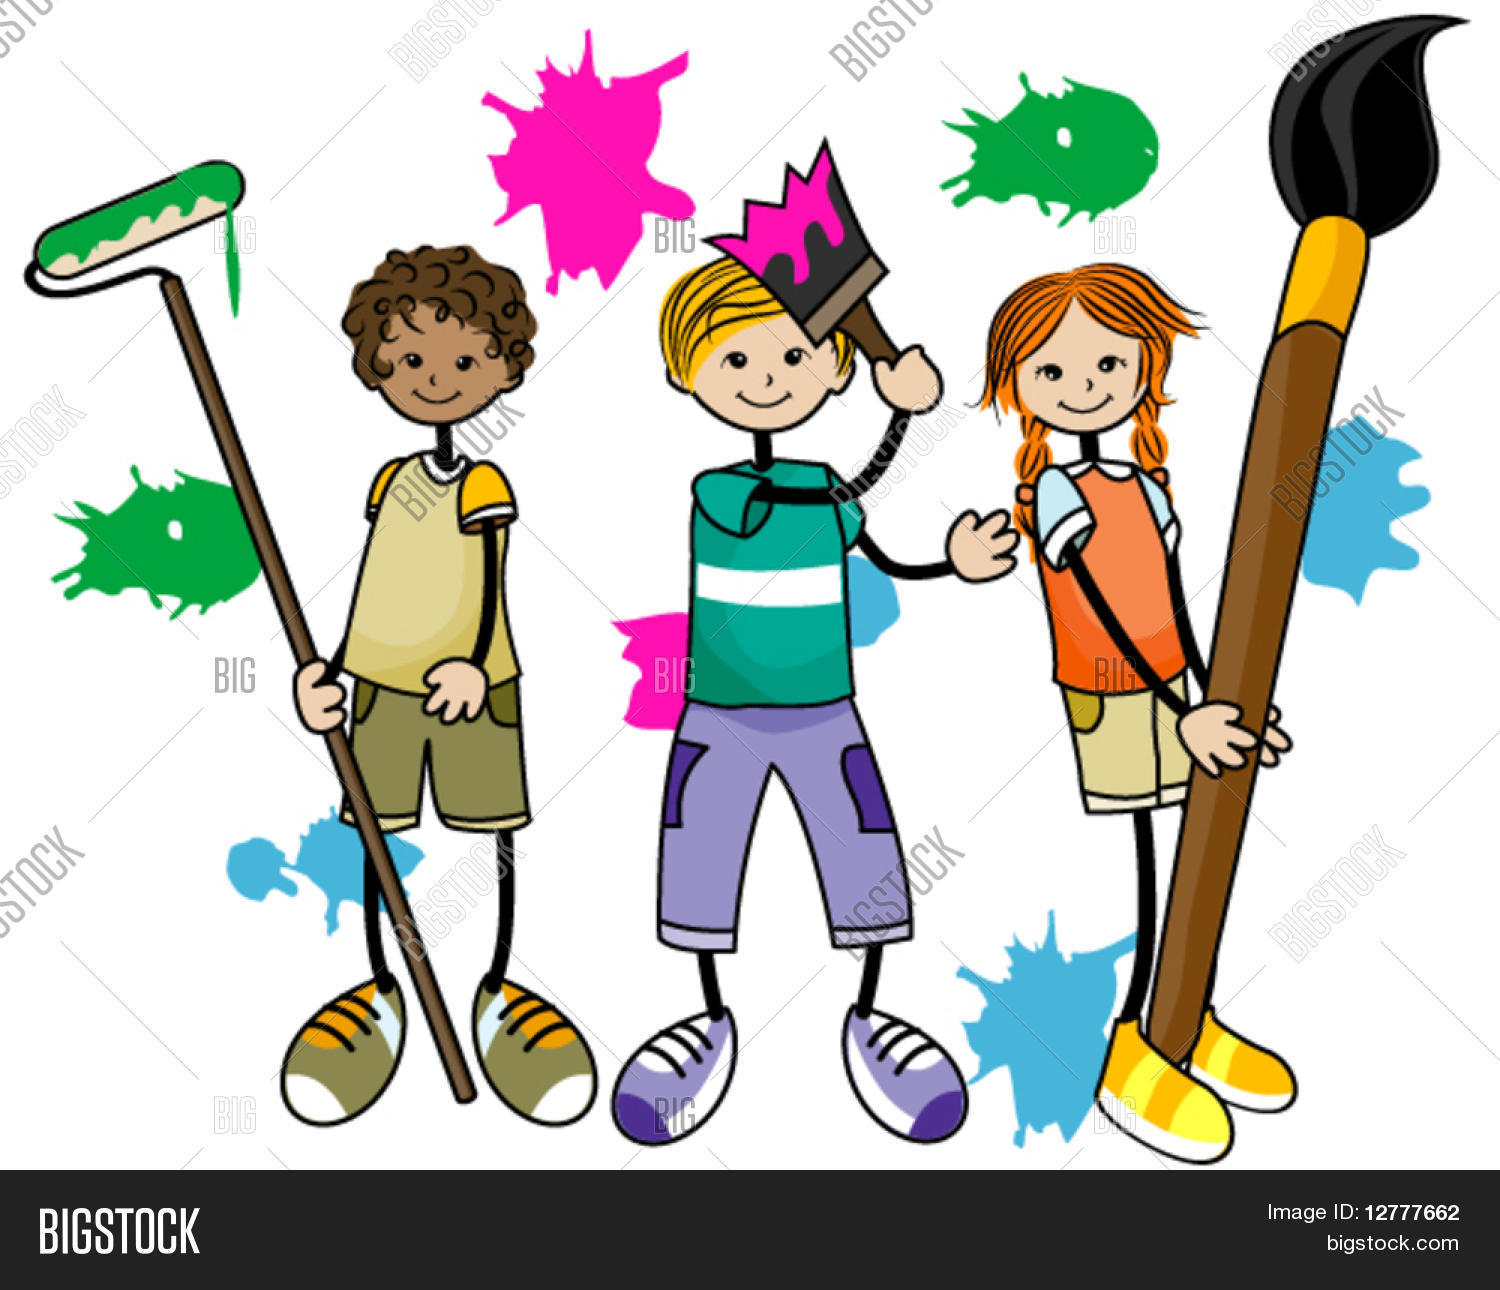 Painting Kids - Vector & Photo (Free Trial) | Bigstock